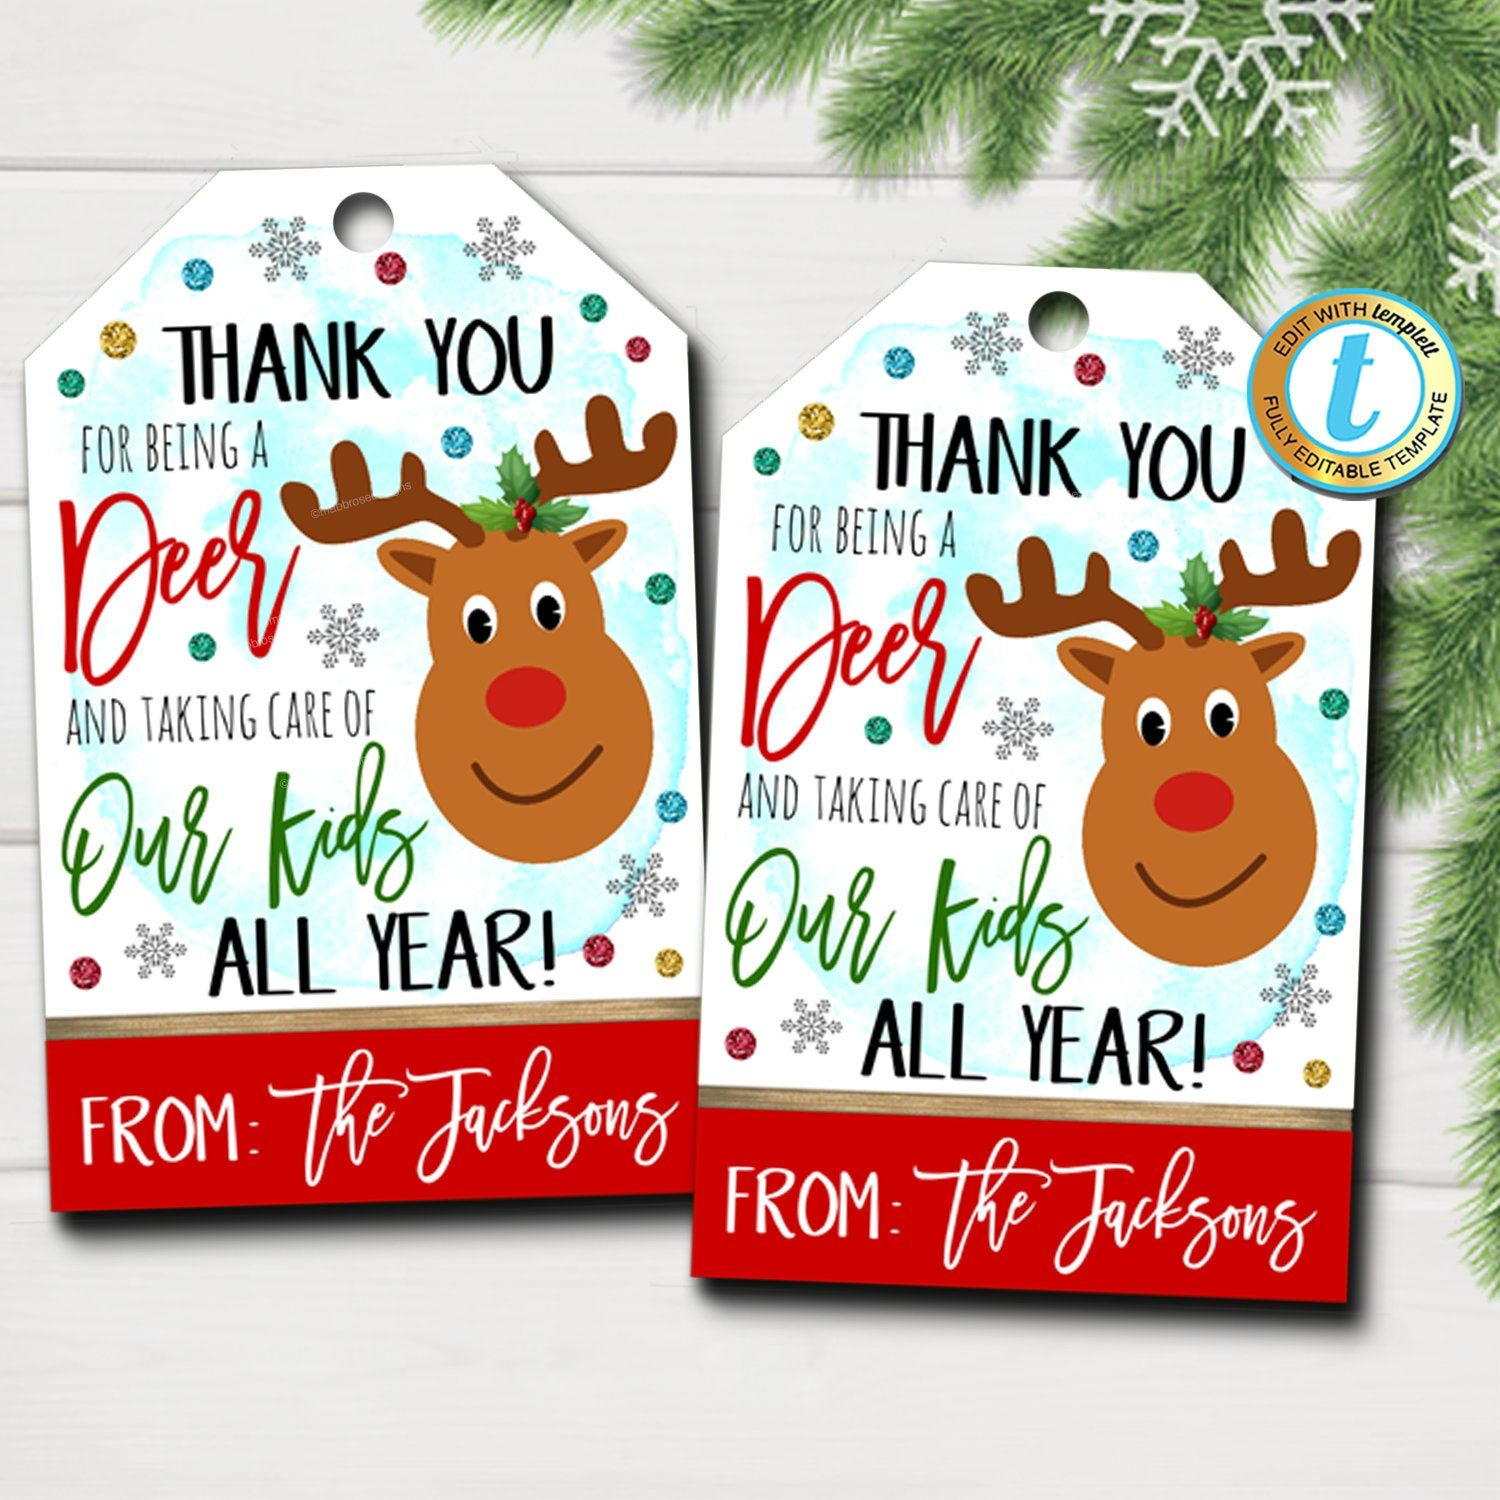 Christmas Gift Tags Thank You For Being A Deer Taking Care Of Etsy In 2021 Holiday Tags Christmas Gift Tags Gift Tags